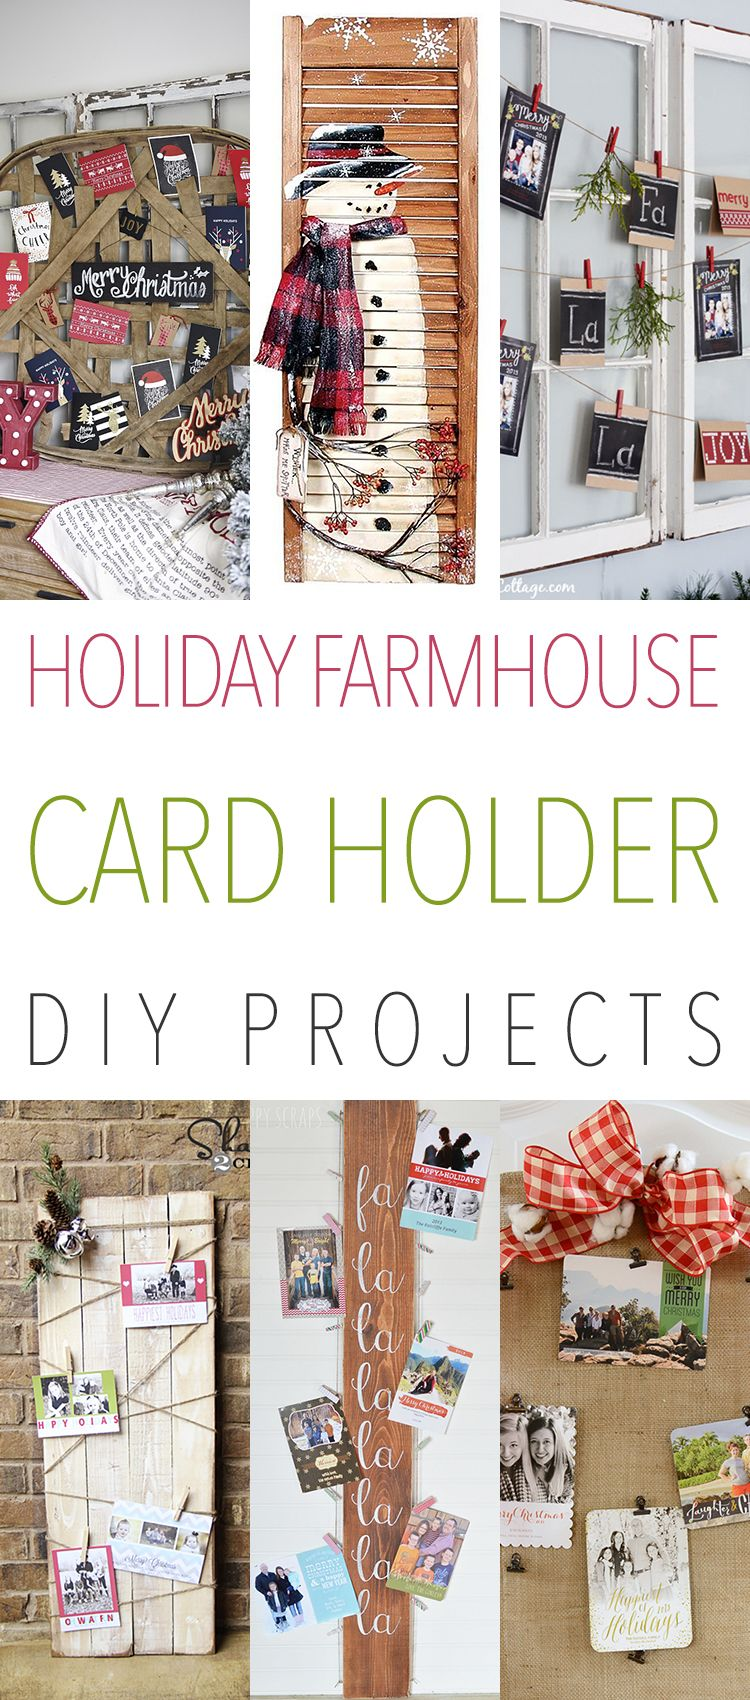 10 Holiday Farmhouse Card Holder Diy Projects The Cottage Market Christmas Projects Diy Card Holder Diy Christmas Projects